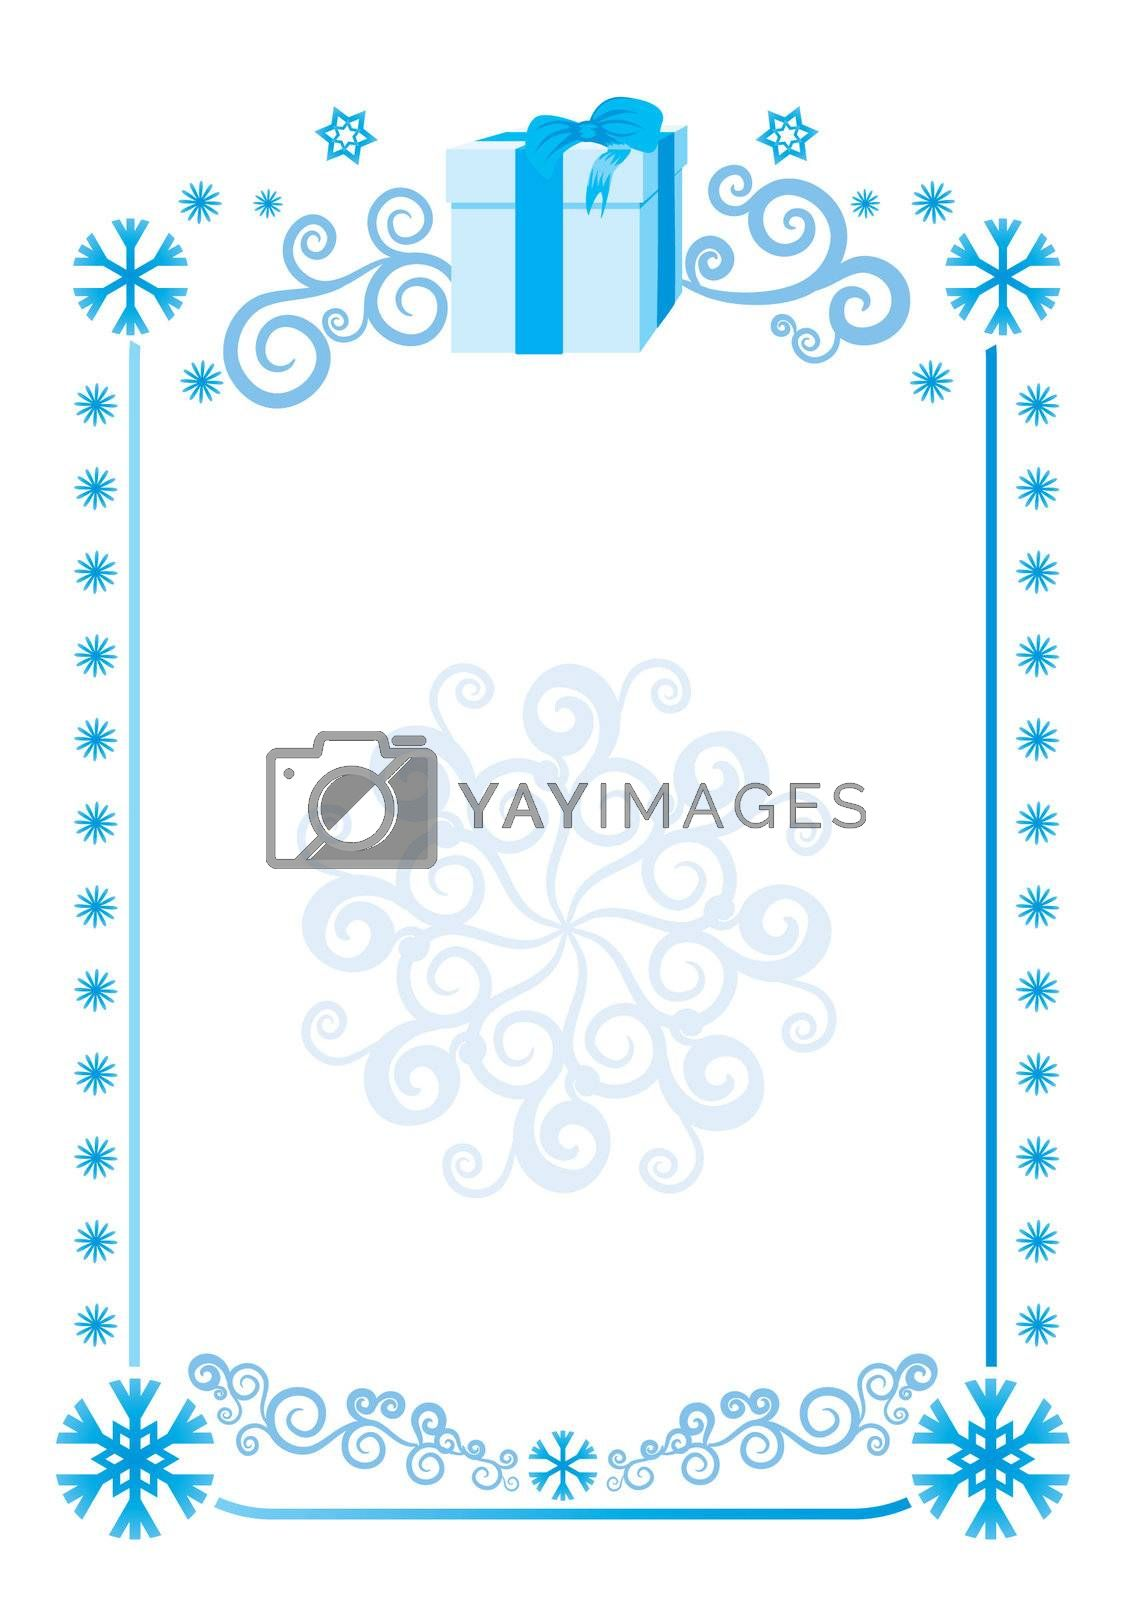 Beautiful snowflakes frame background. Vector illustration